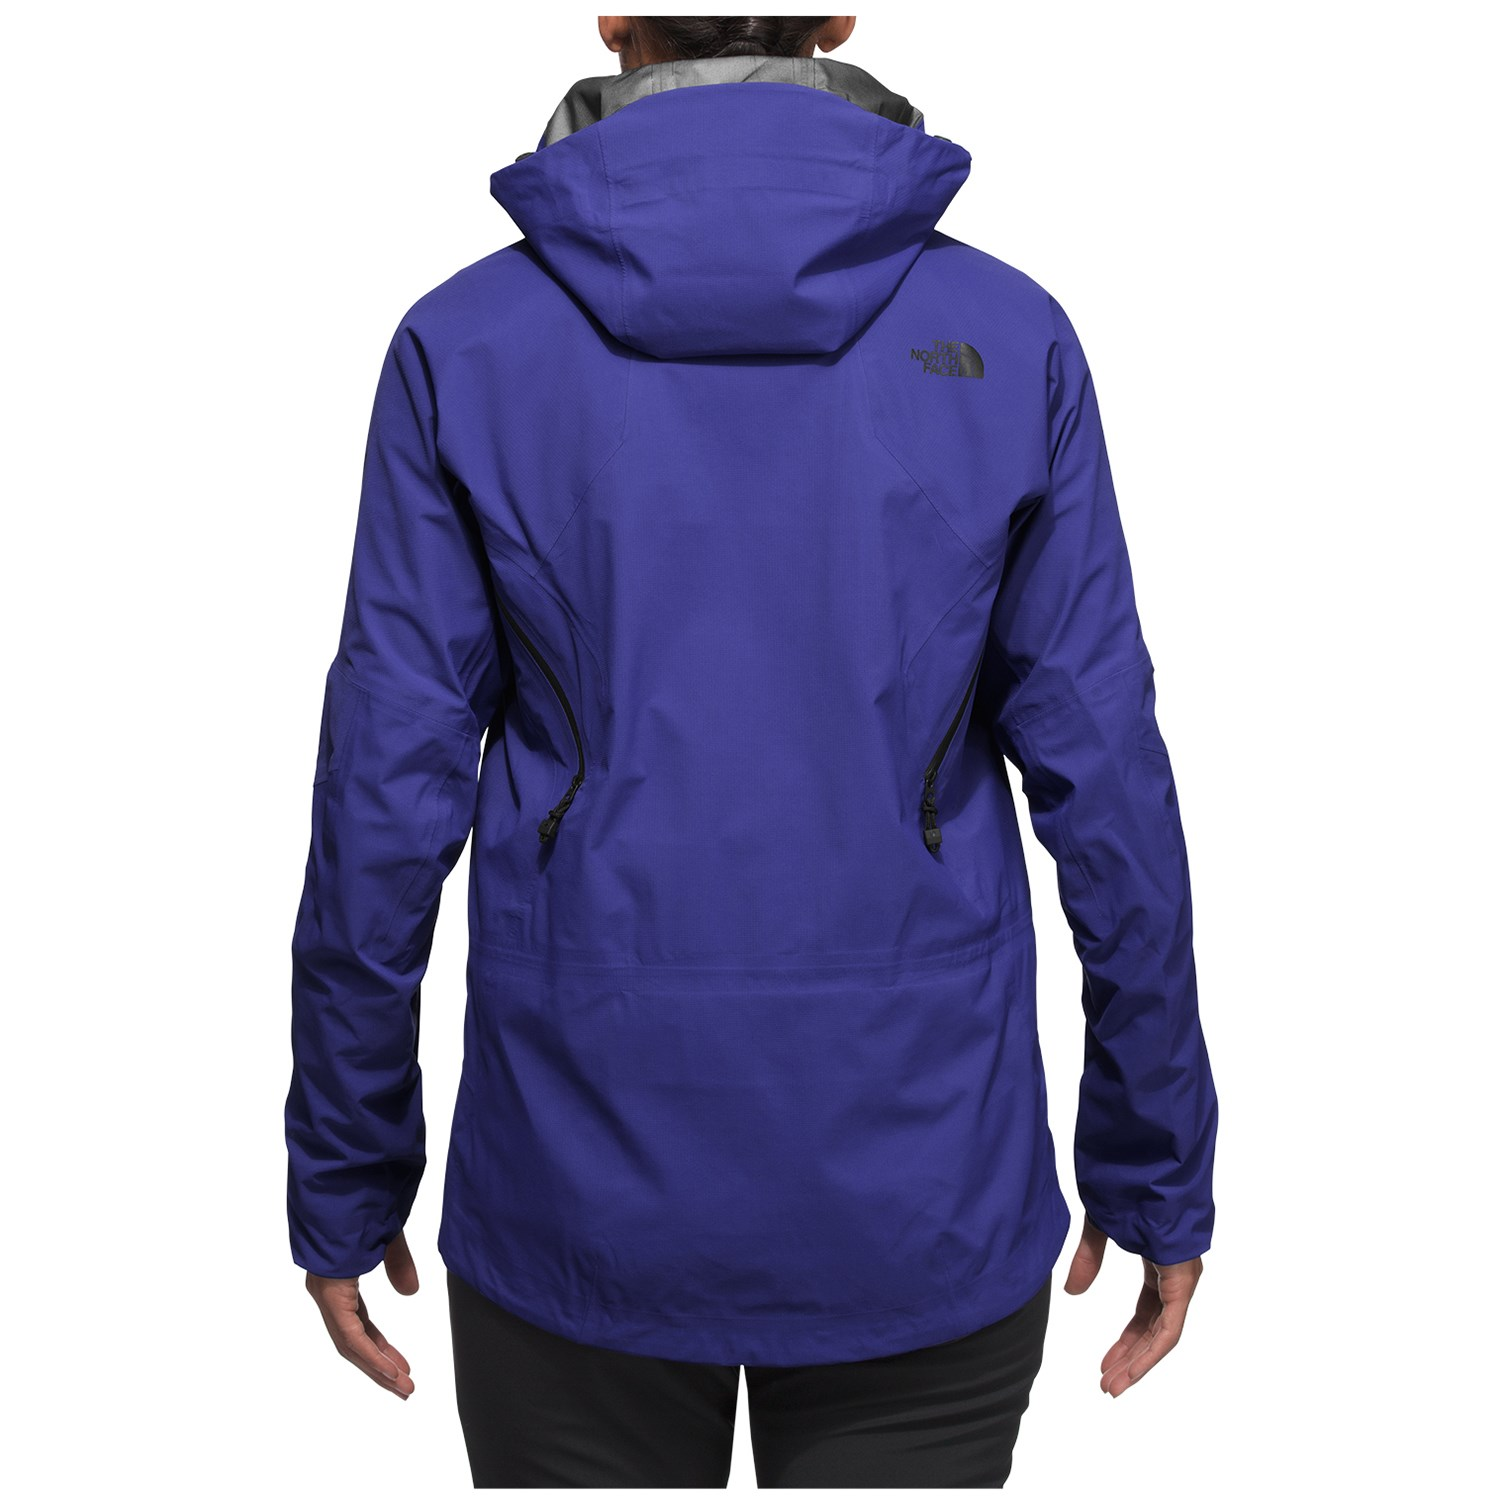 b8c793109ce7 ... hot the north face purist triclimate jacket womens evo bac89 17df0 ...